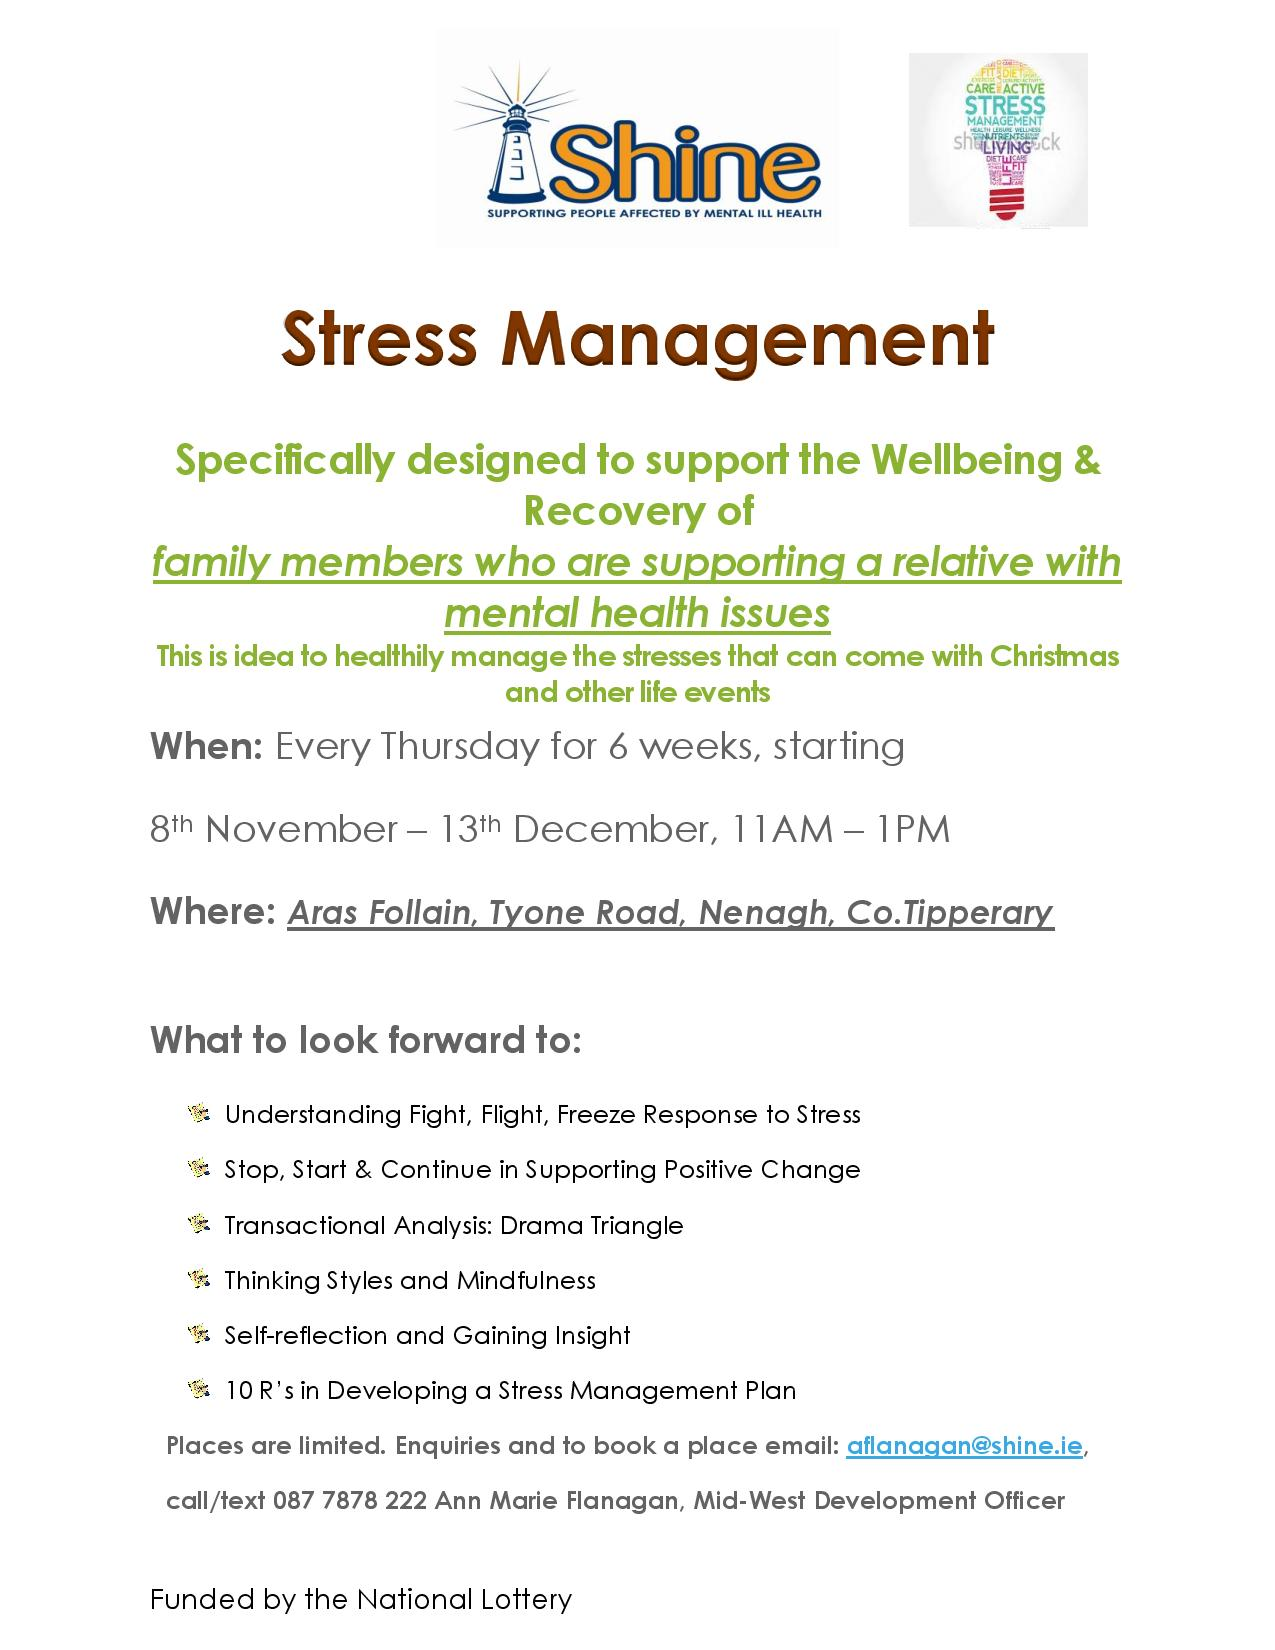 Stress Management Course In Nenagh Co Tipperary